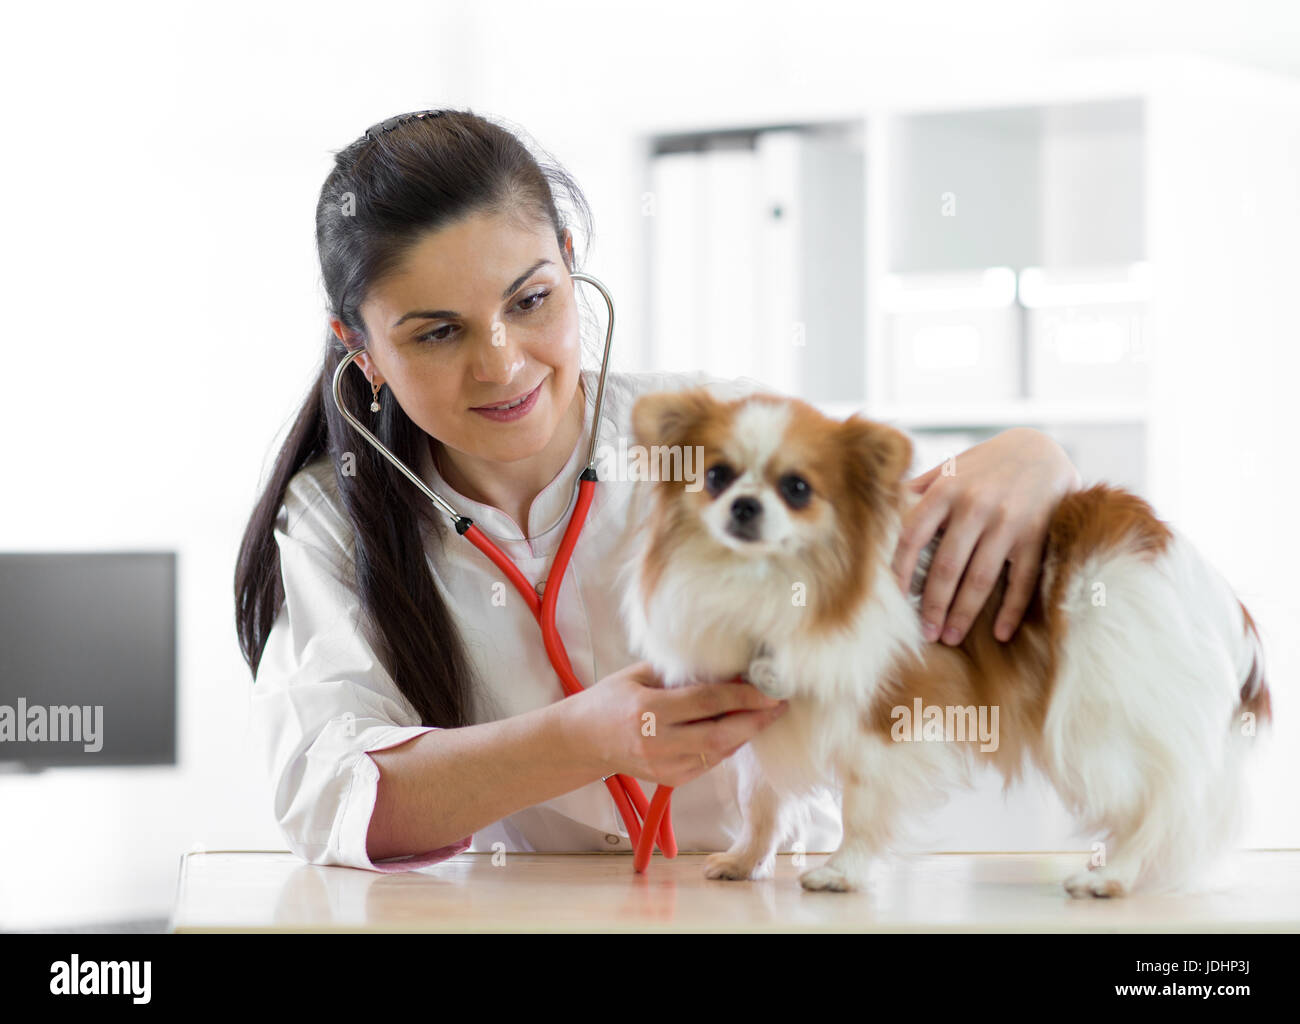 Cute young female veterinarian doctor using stethoscope listening to the heartbeat of a terrier canine dog at the - Stock Image